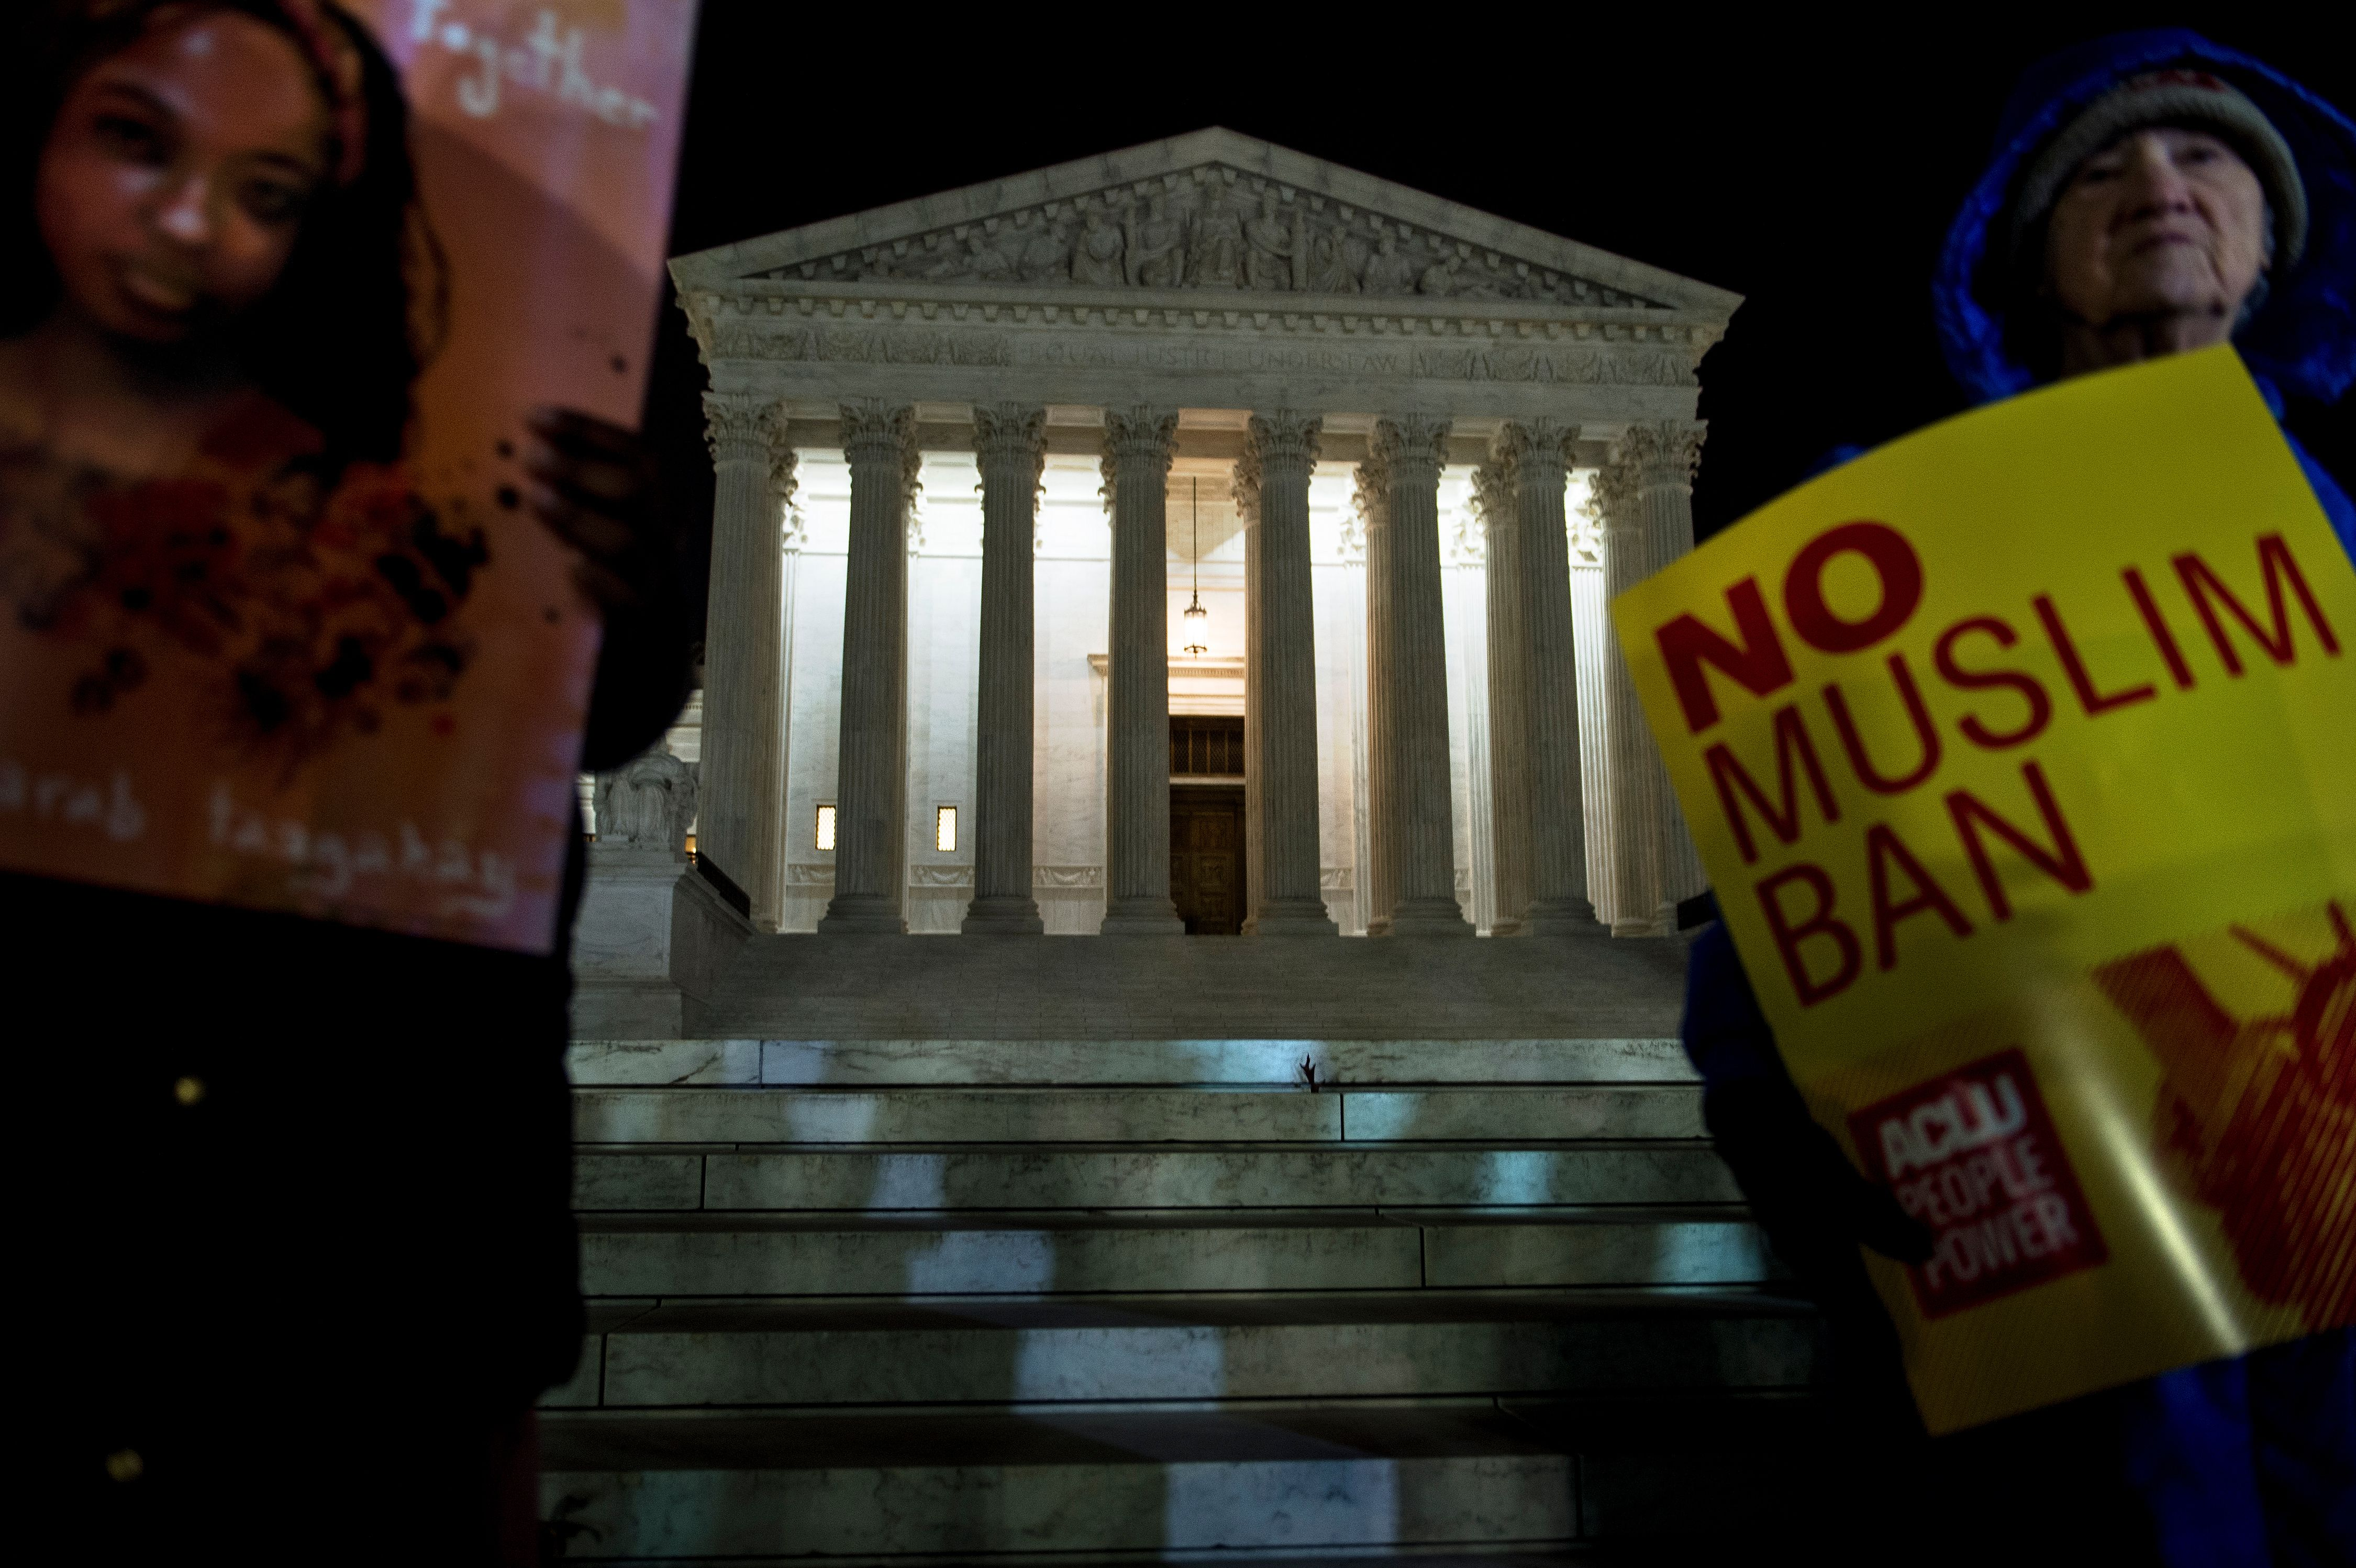 The travel ban decision echoes some of the worst Supreme Court decisions in history